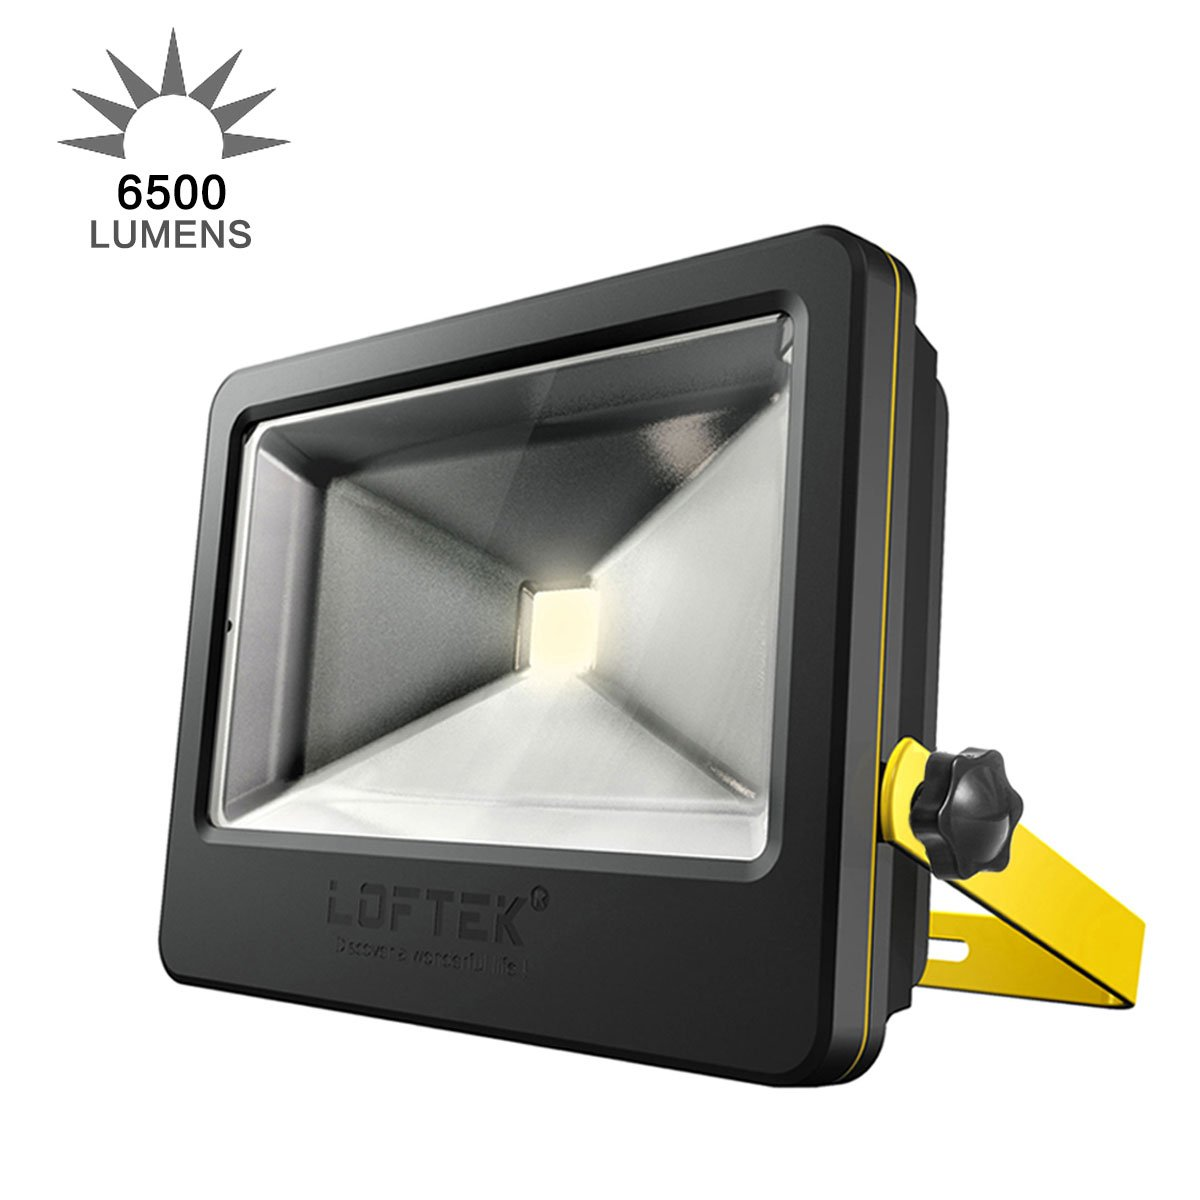 Loftek 50w Daylight White Floodlight Super Bright Outdoor Led Flood Light 6500 Lm High Powered Waterproof Security Spotlight With Timer Function